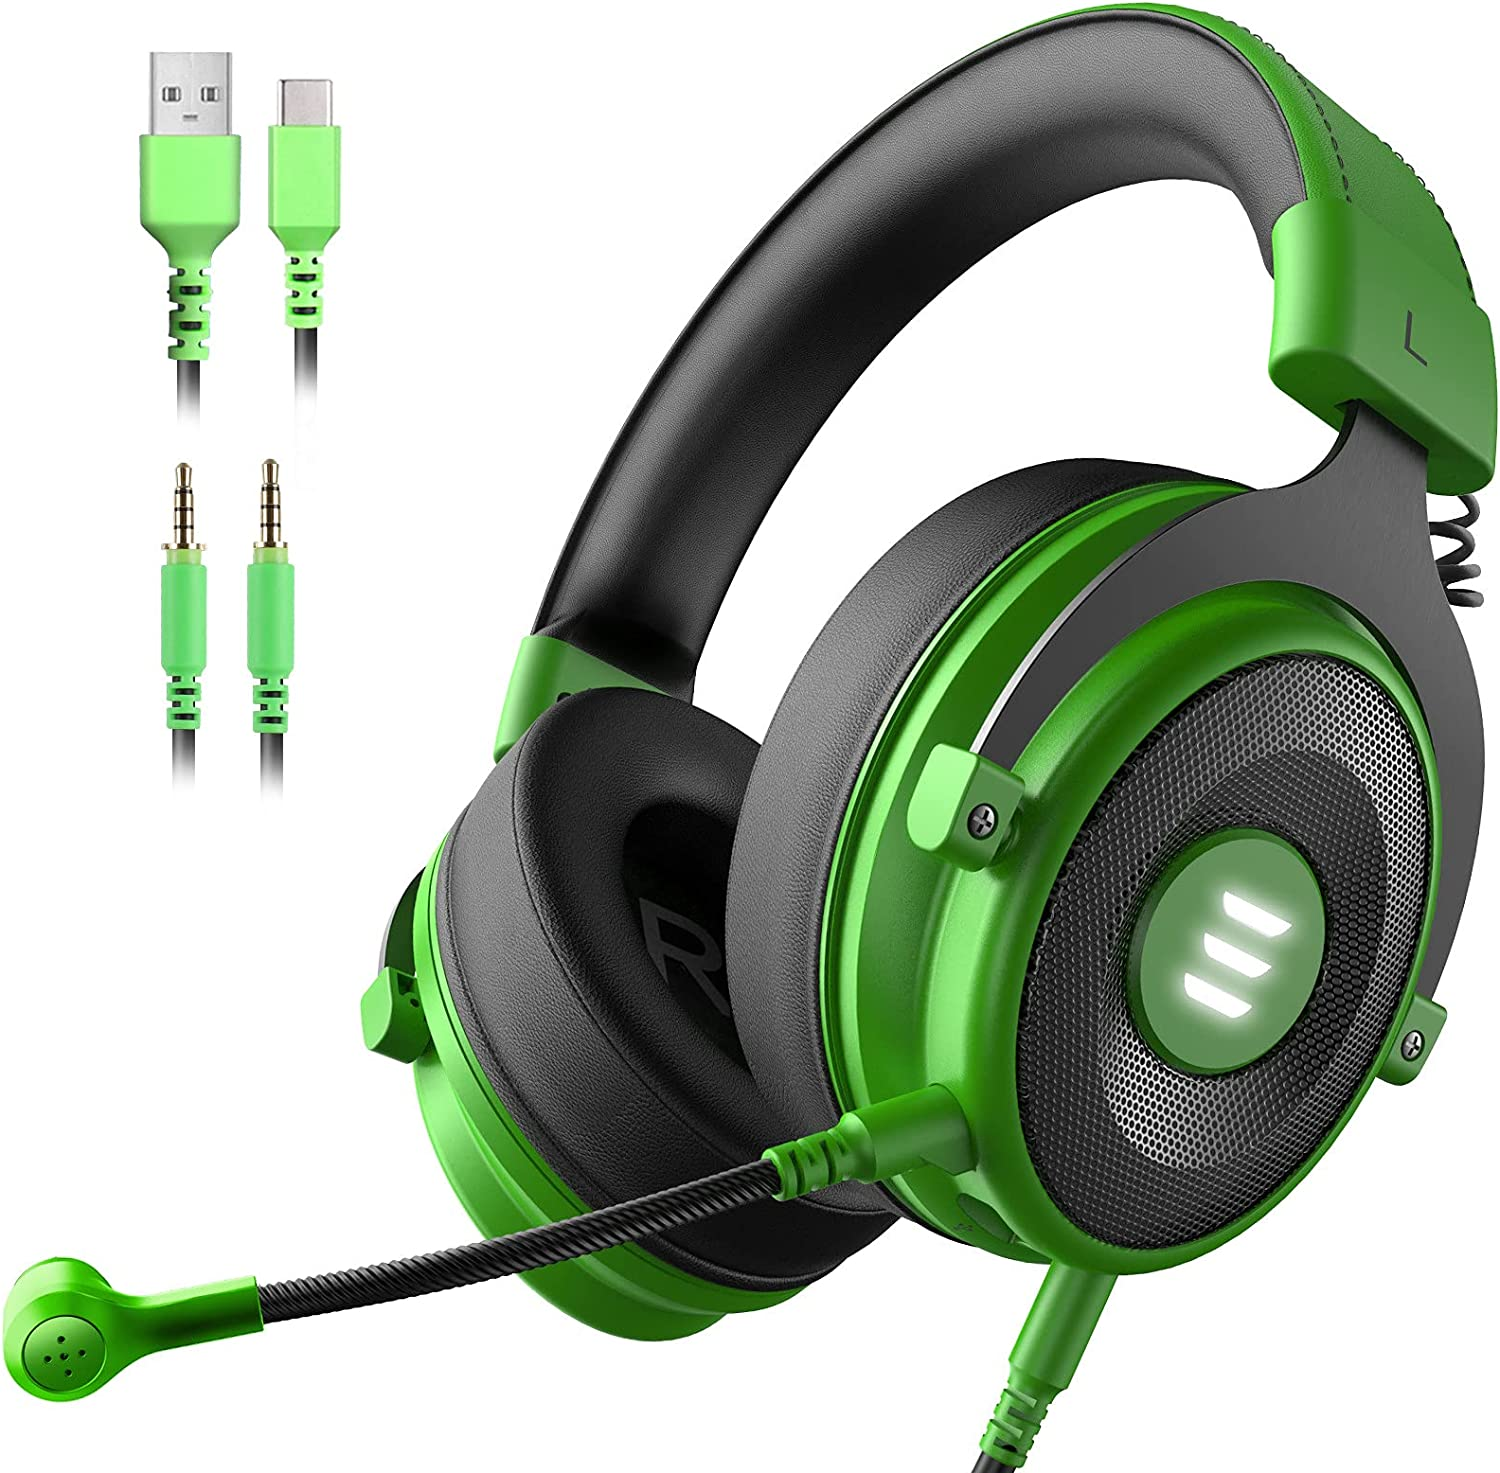 EKSA E900 PS4 Gaming Headset - PC USB Headset with 7.1 Surround Sound Detachable Microphone&LED Light, Gaming Headphones Compatible with PC, PS4, PS5, Xbox One, Computer, Laptop (E900 Pro, Green)